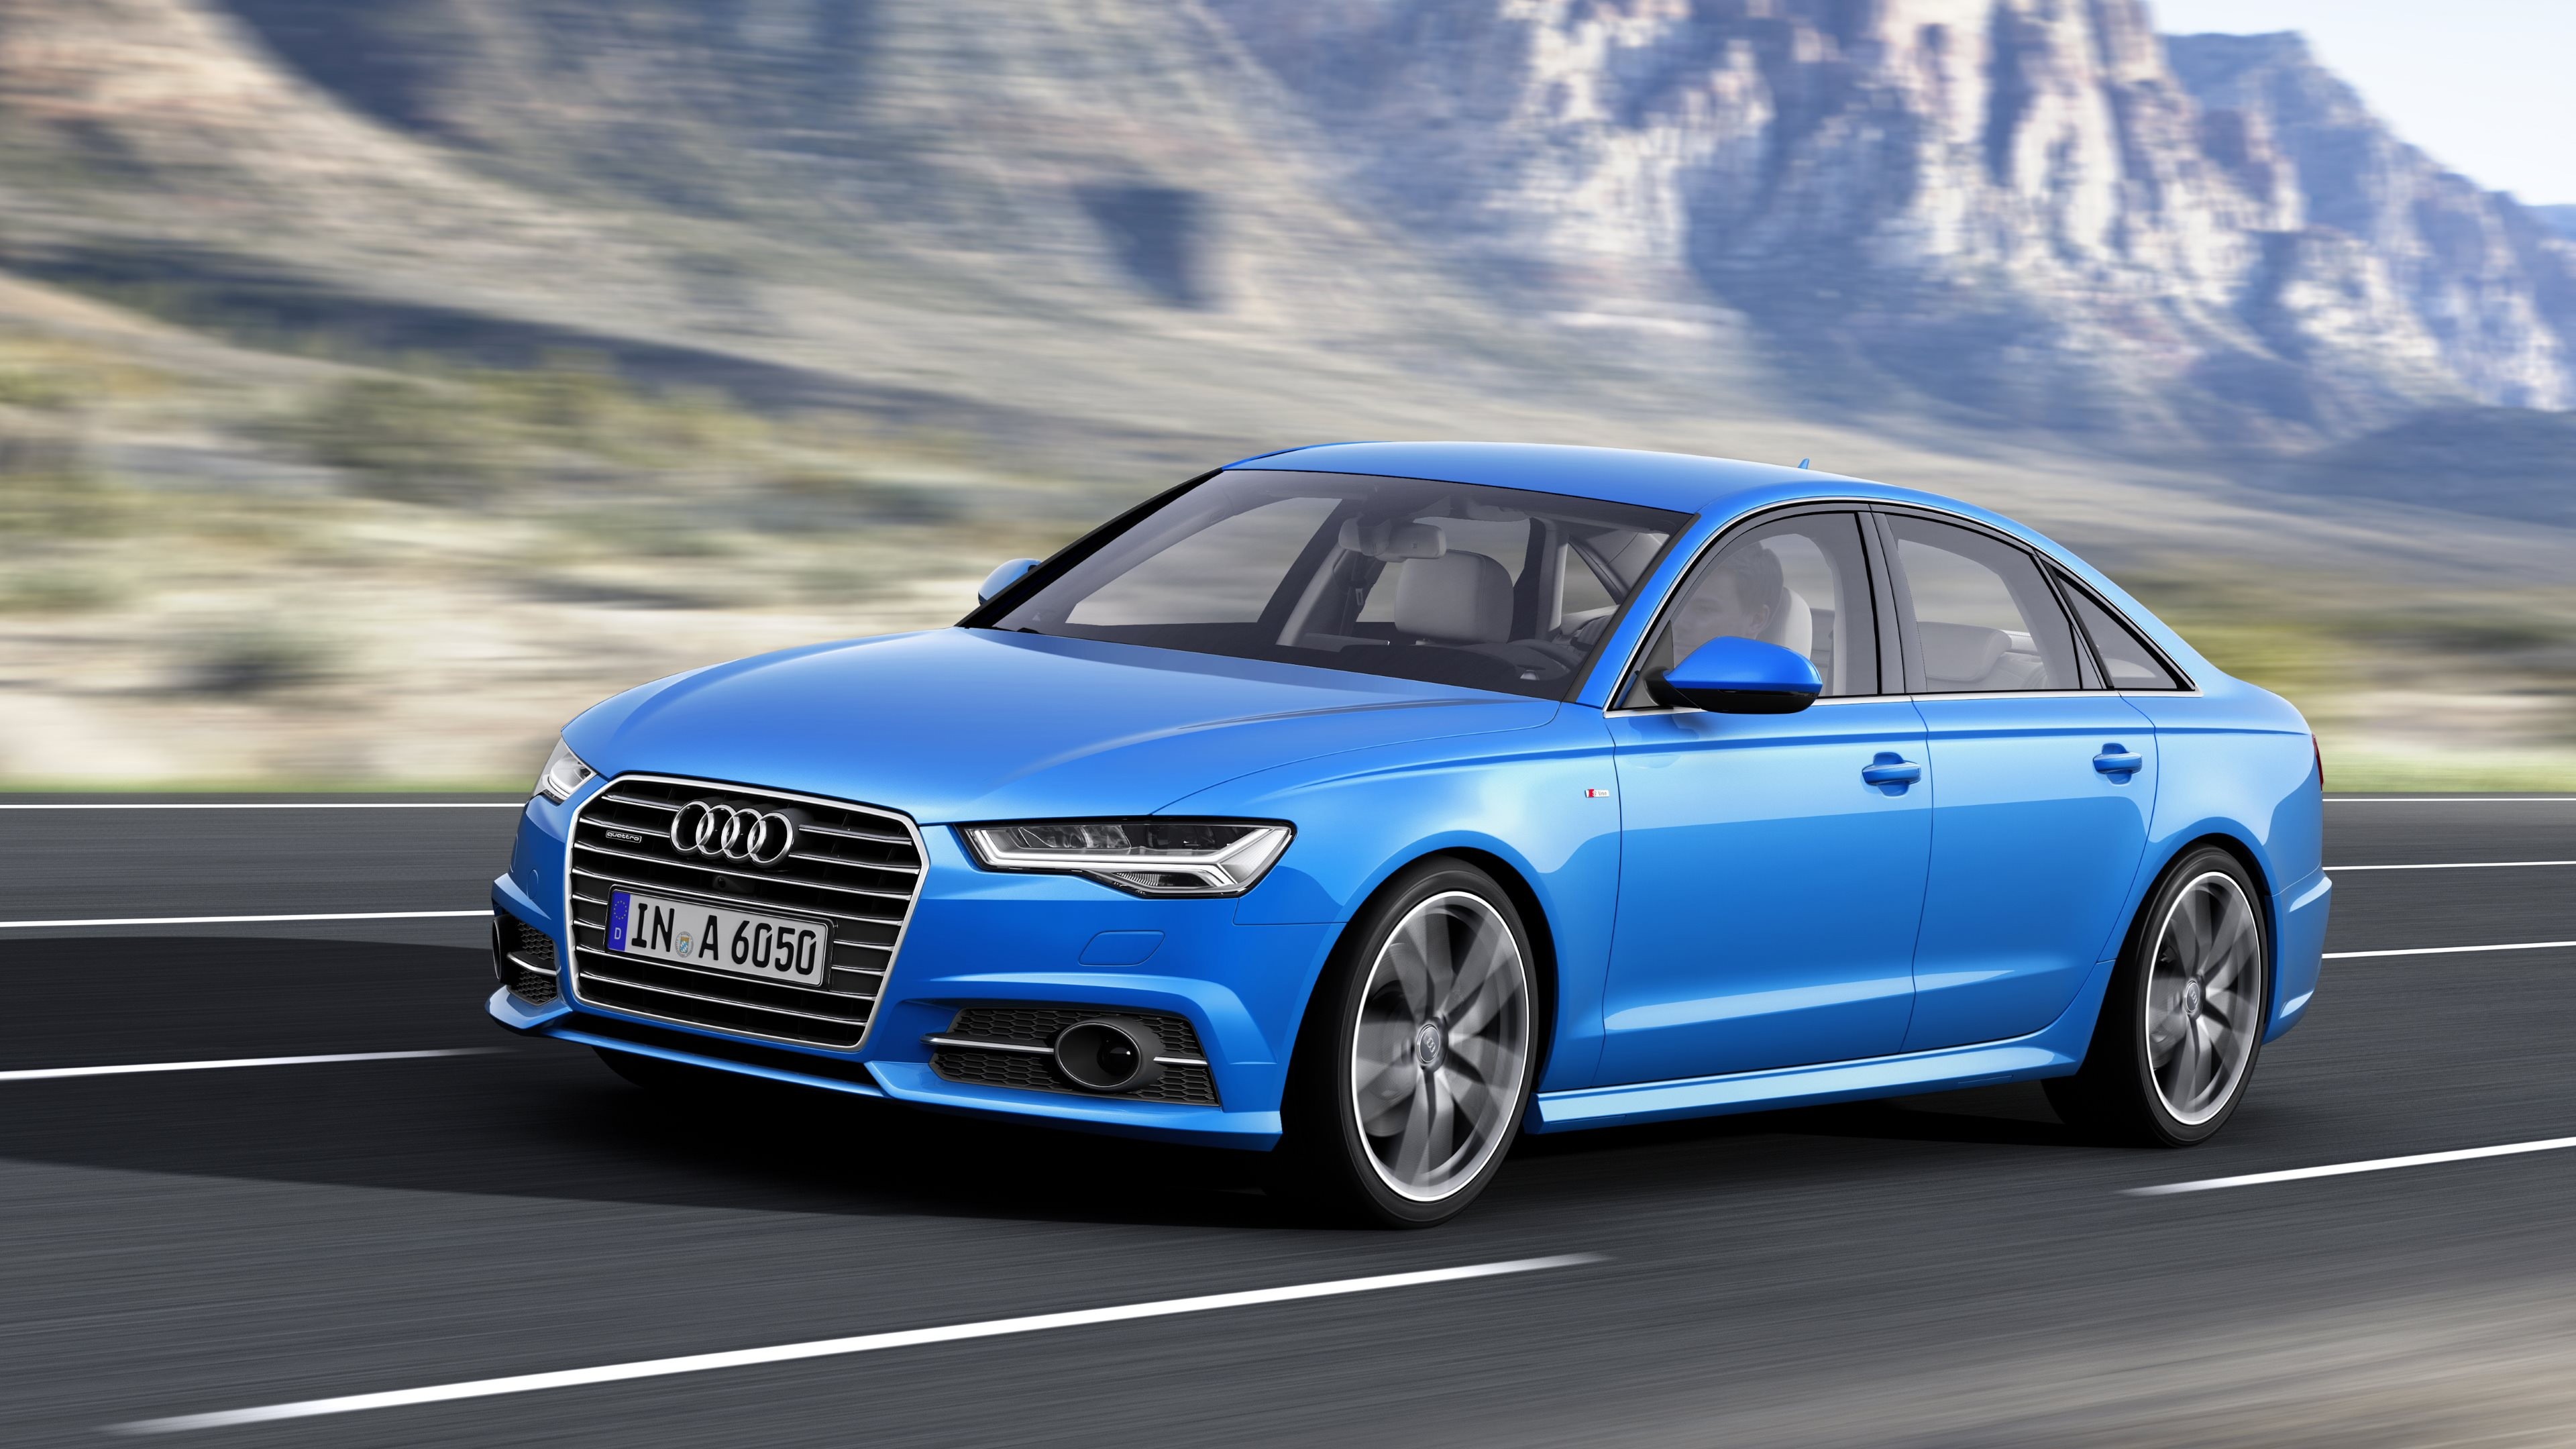 Audi A6 2016 Series HD Wallpapers 4K Wallpapers 3840x2160